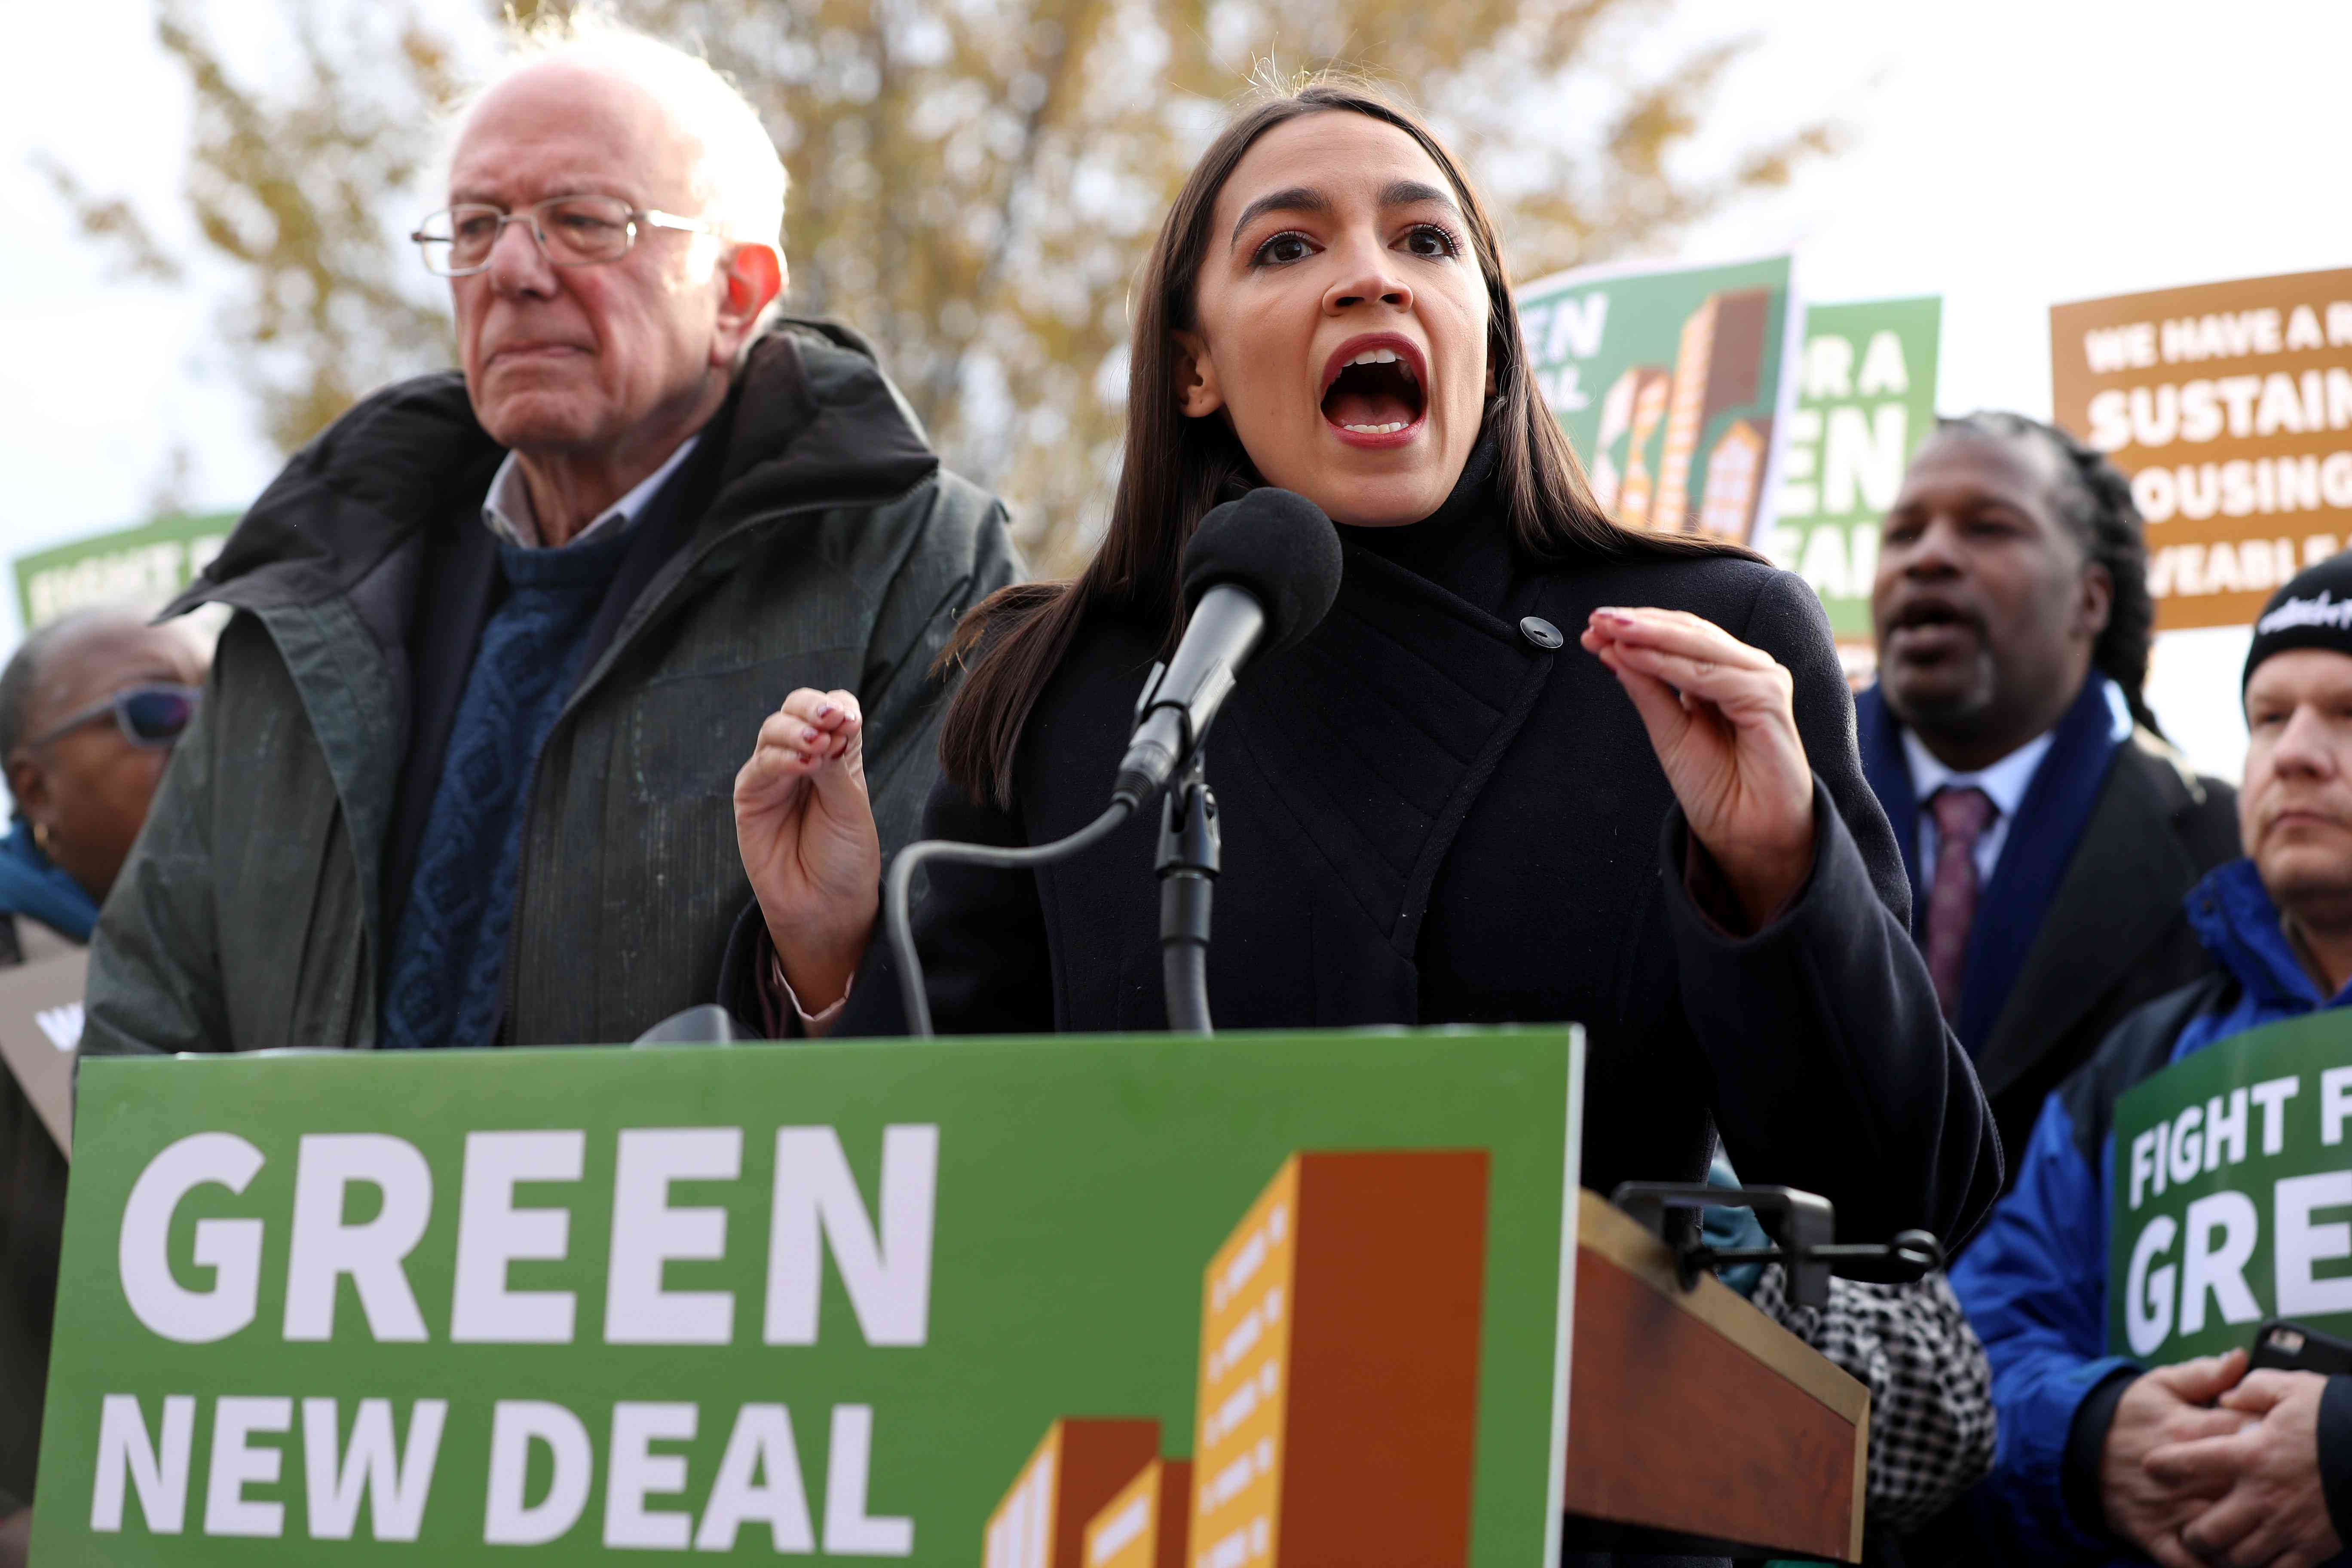 Sen. Bernie Sanders (I-VT) (L) and Rep. Alexandria Ocasio-Cortez (D-NY) hold a news conference to introduce legislation to transform public housing as part of their Green New Deal proposal on November 14, 2019 in Washington, DC.